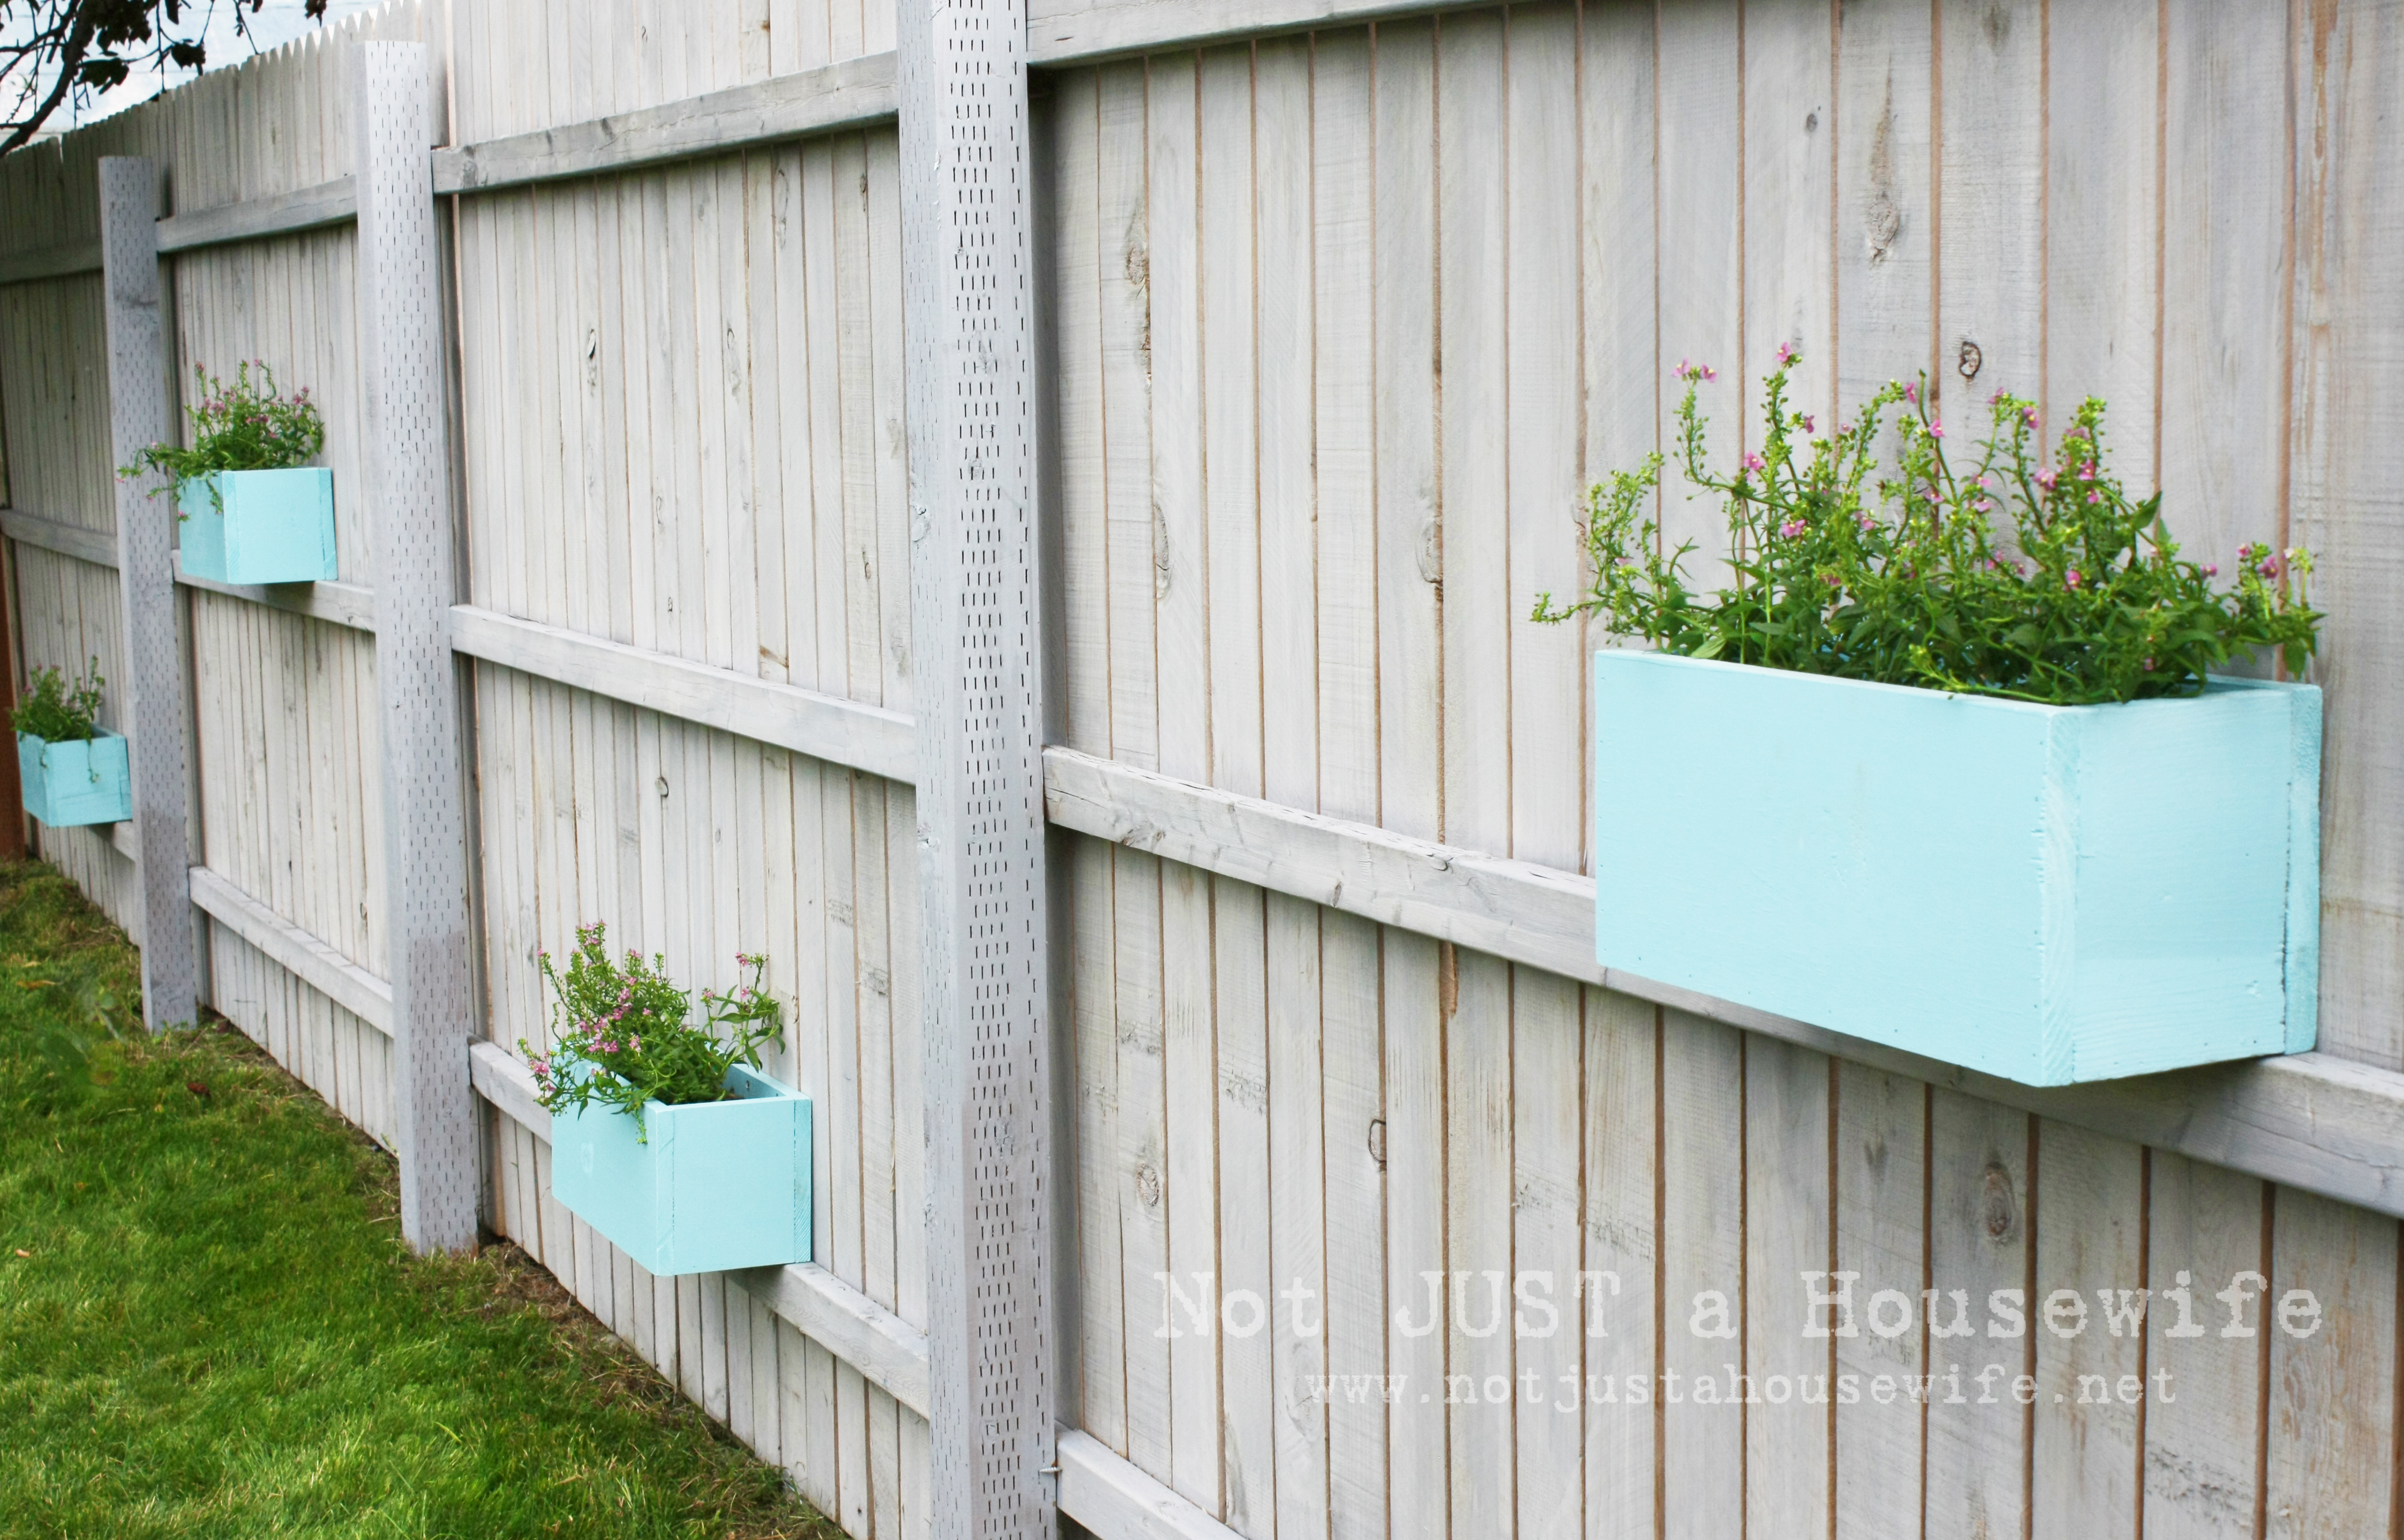 planter box on fence